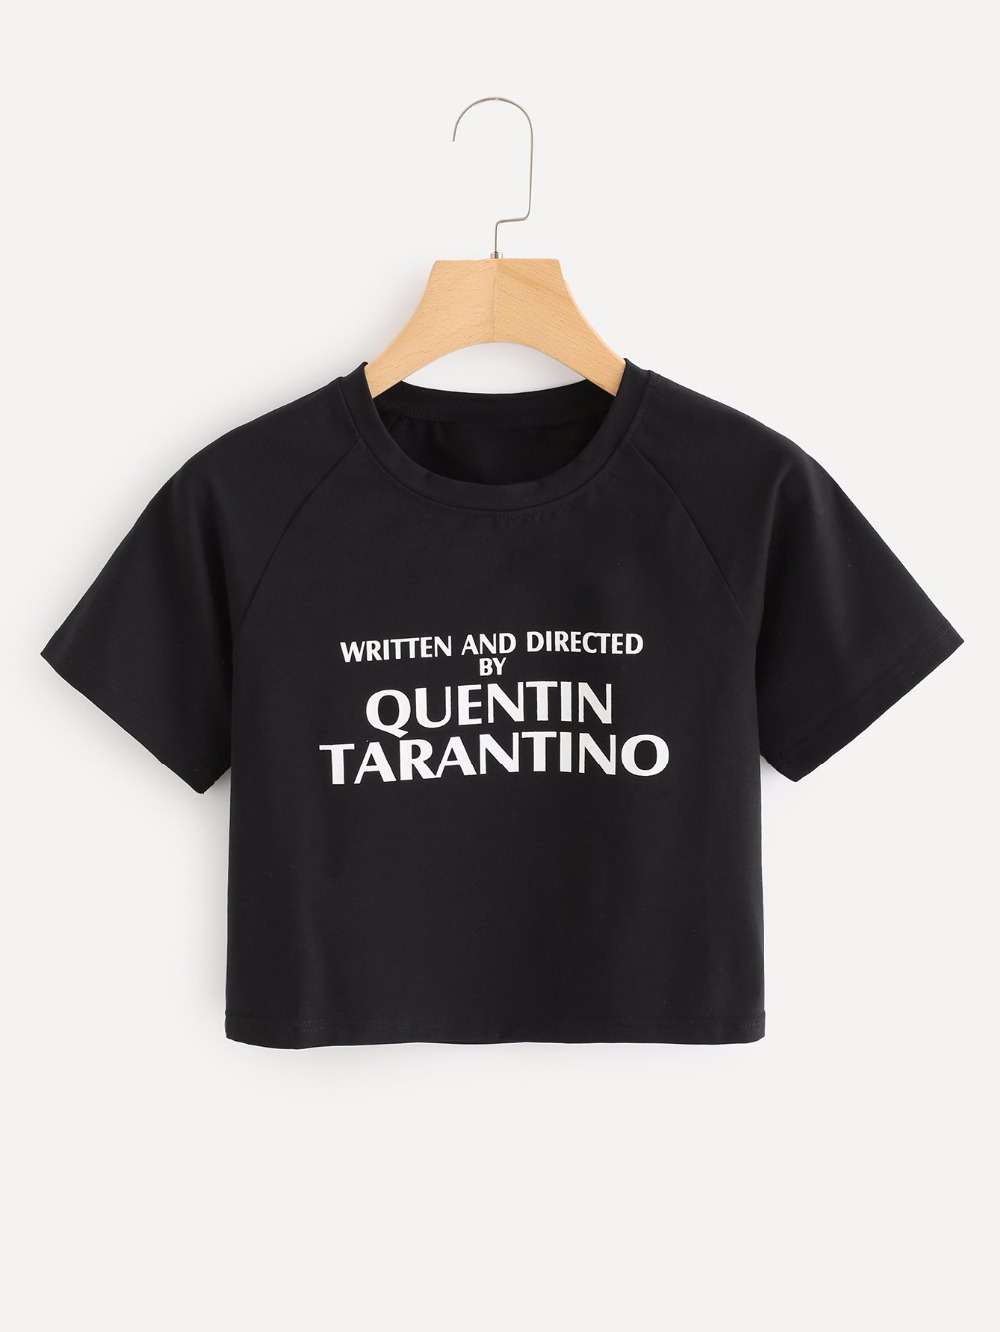 c2168c510 WRITTEN AND DIRECTED BY QUENTIN TARANTINO CROP TOPS slogan short tees 90s  women fashion cotton aesthetic